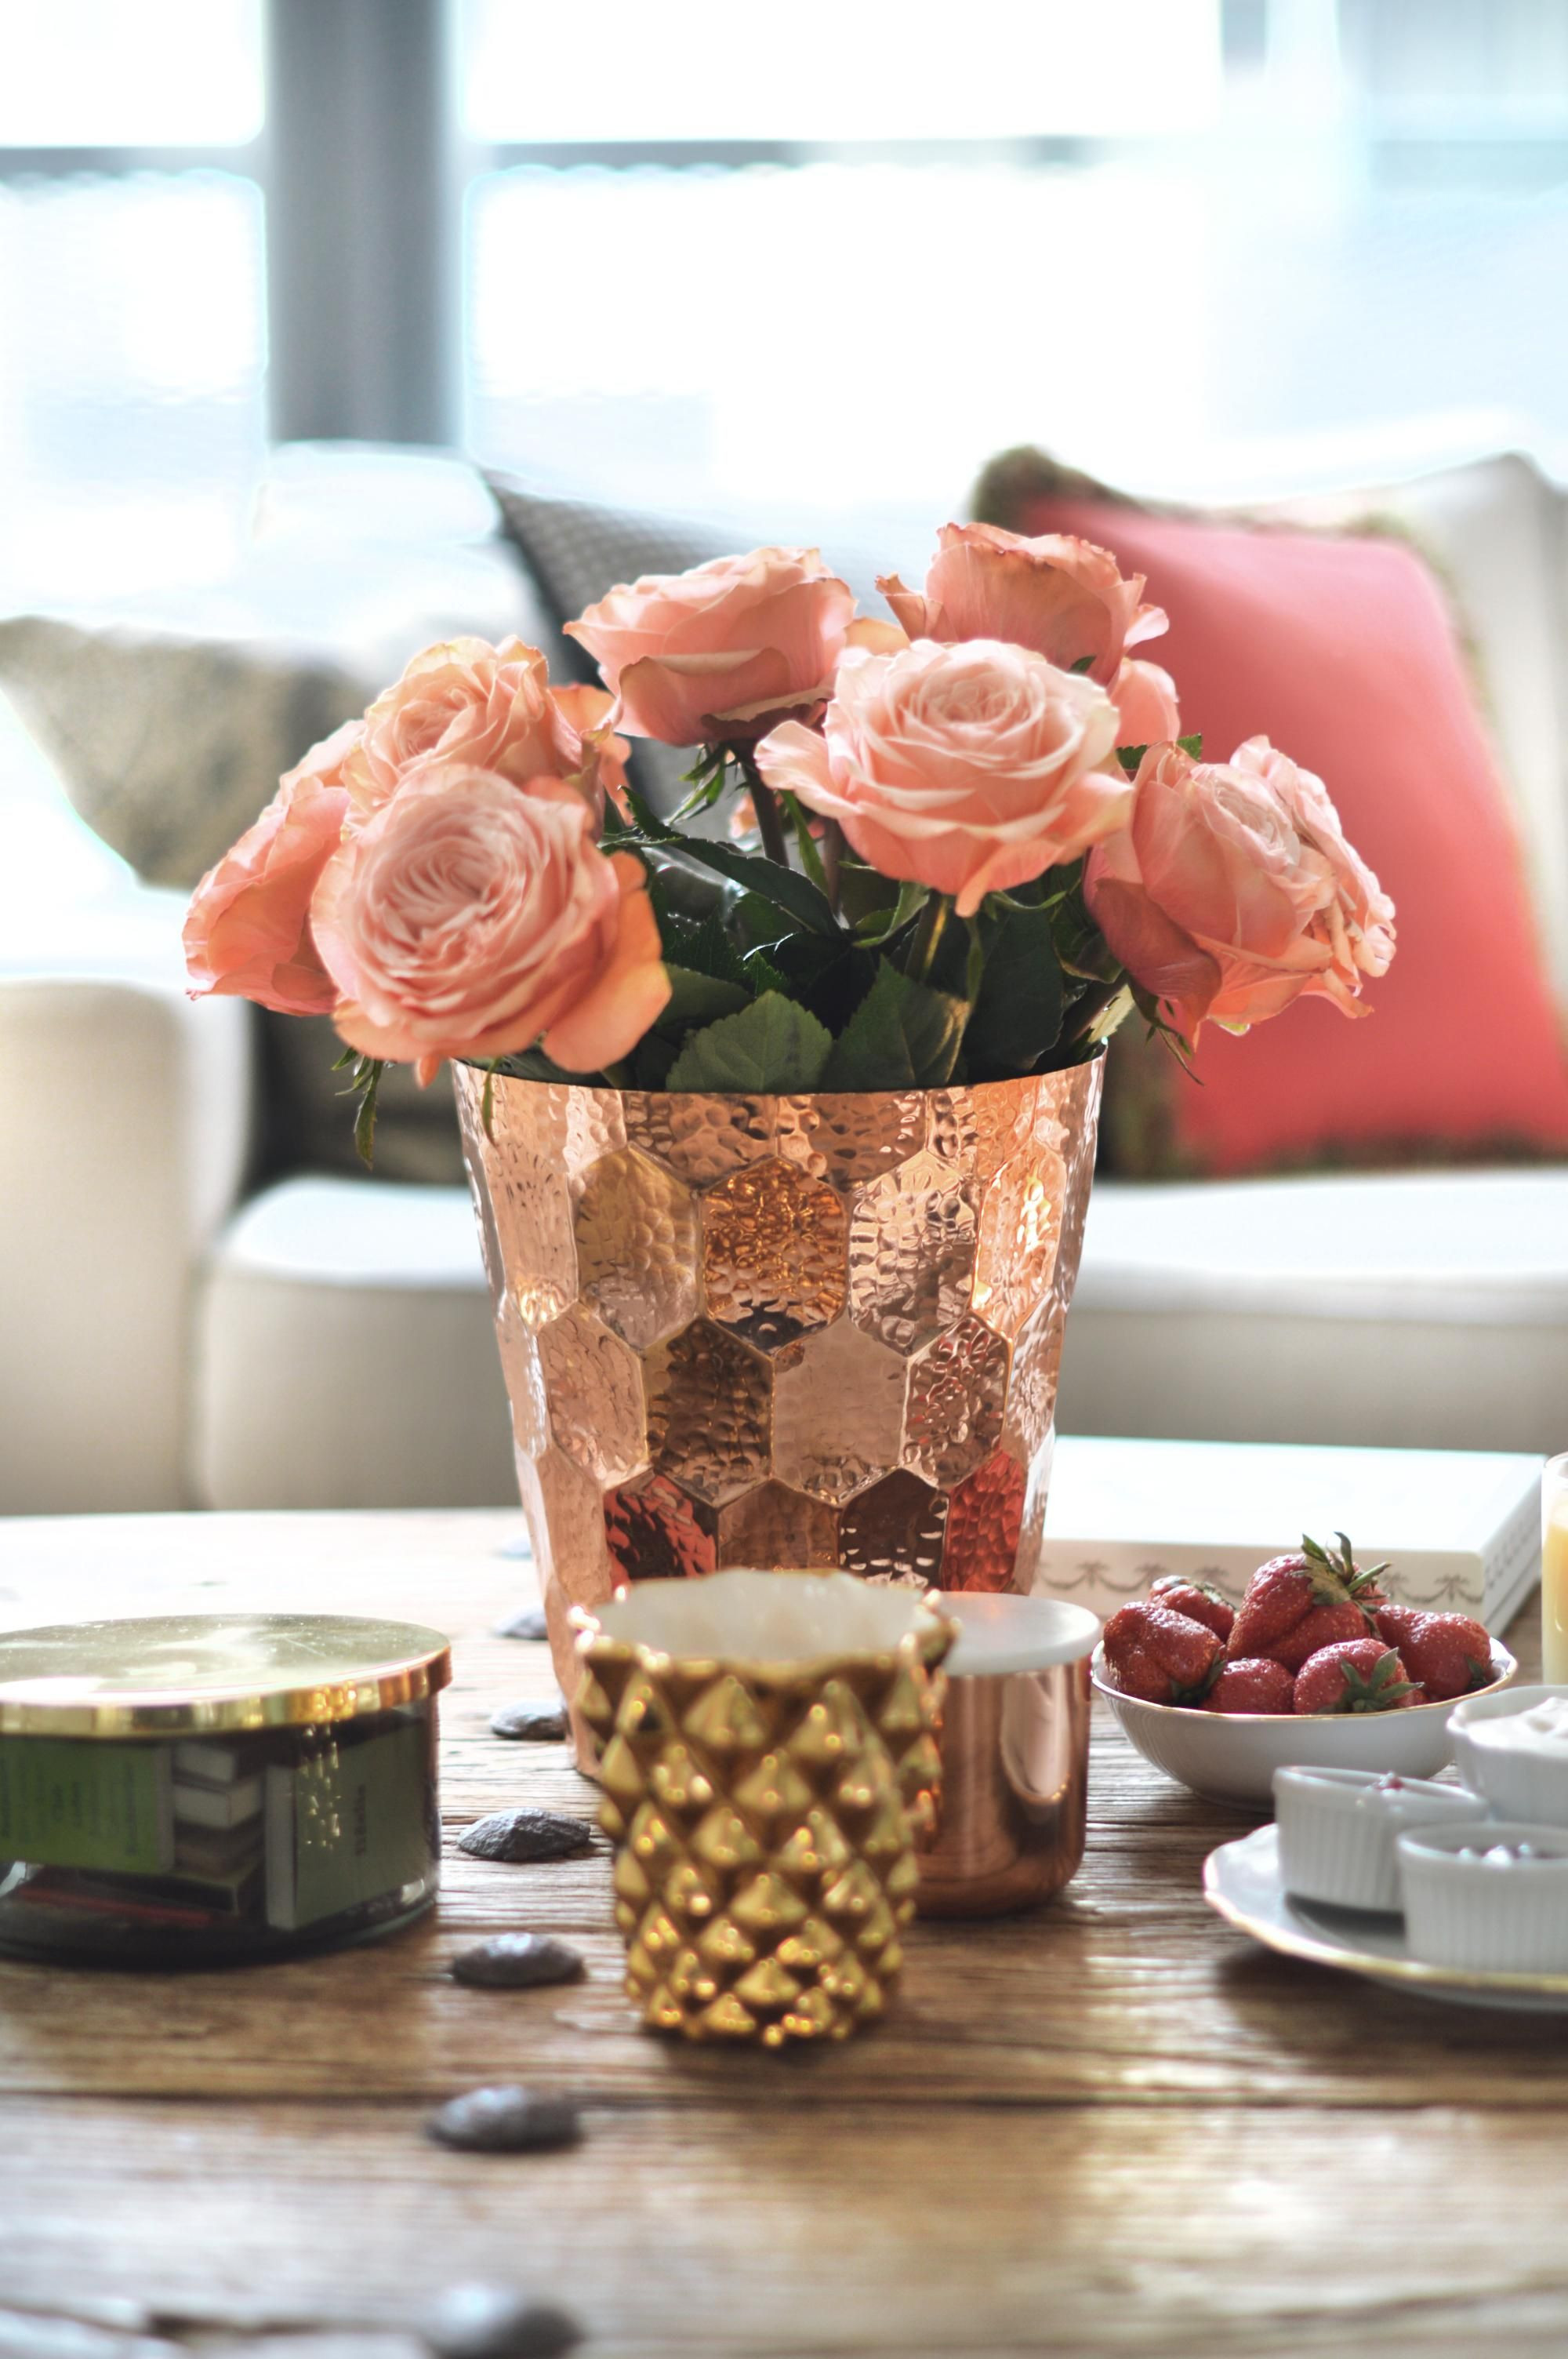 tom dixon vase gold of einladung zum tee mit wedgwood tom dixon vase pinterest within tomdixon copper champagne cooler whisky colored roses gold vase by ensoie tea set in strawberry pattern